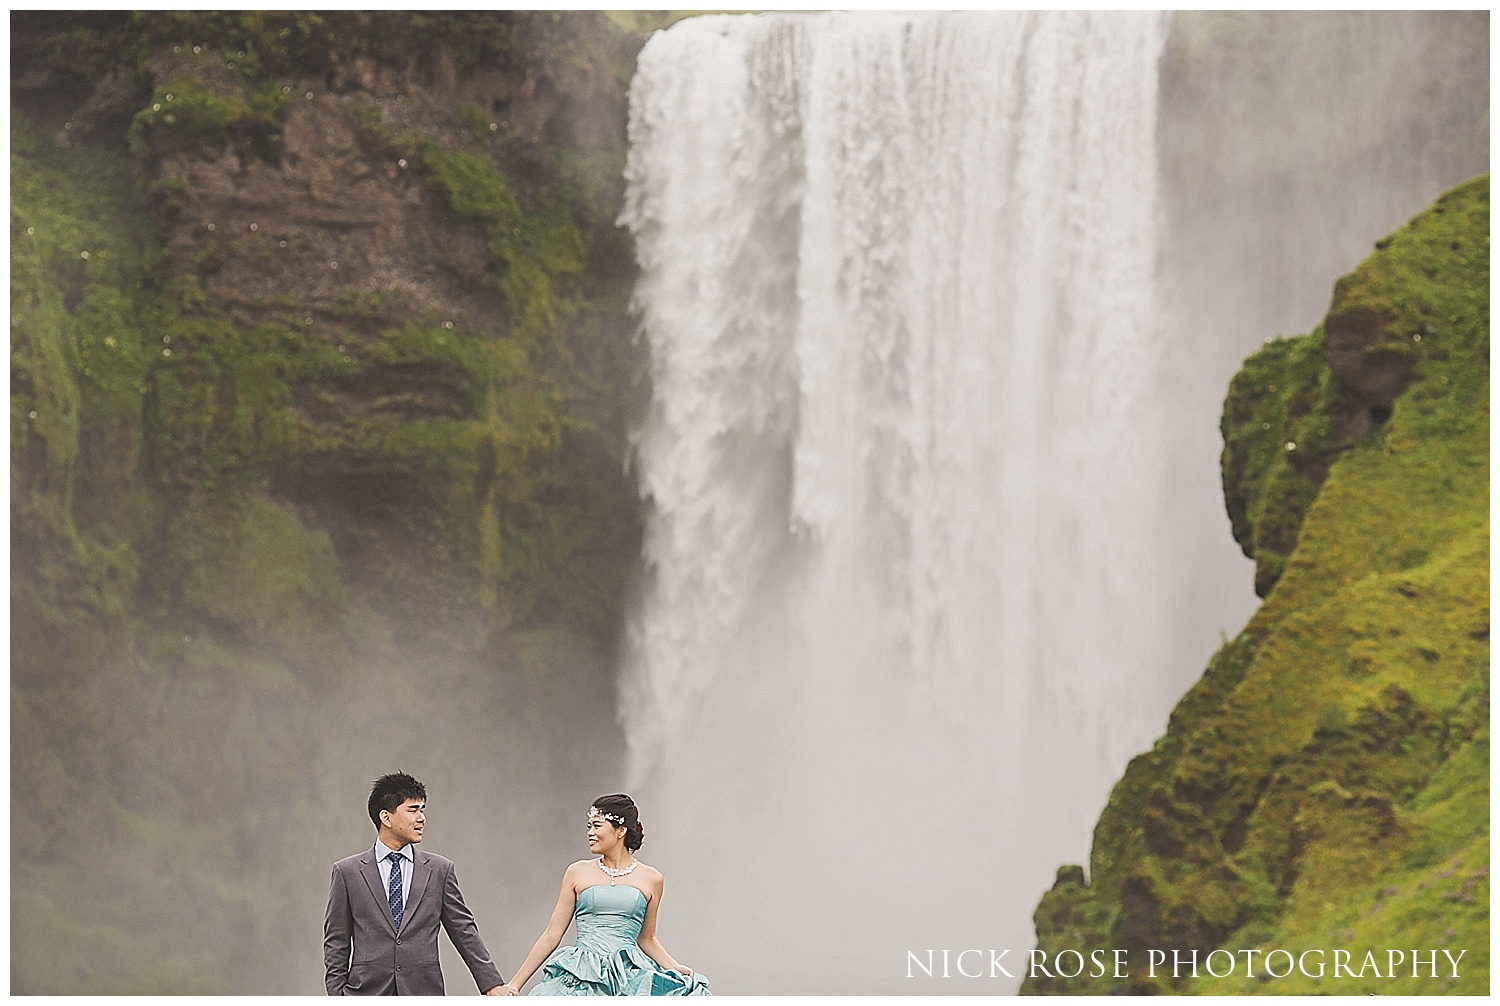 Destination pre wedding waterfall photographs